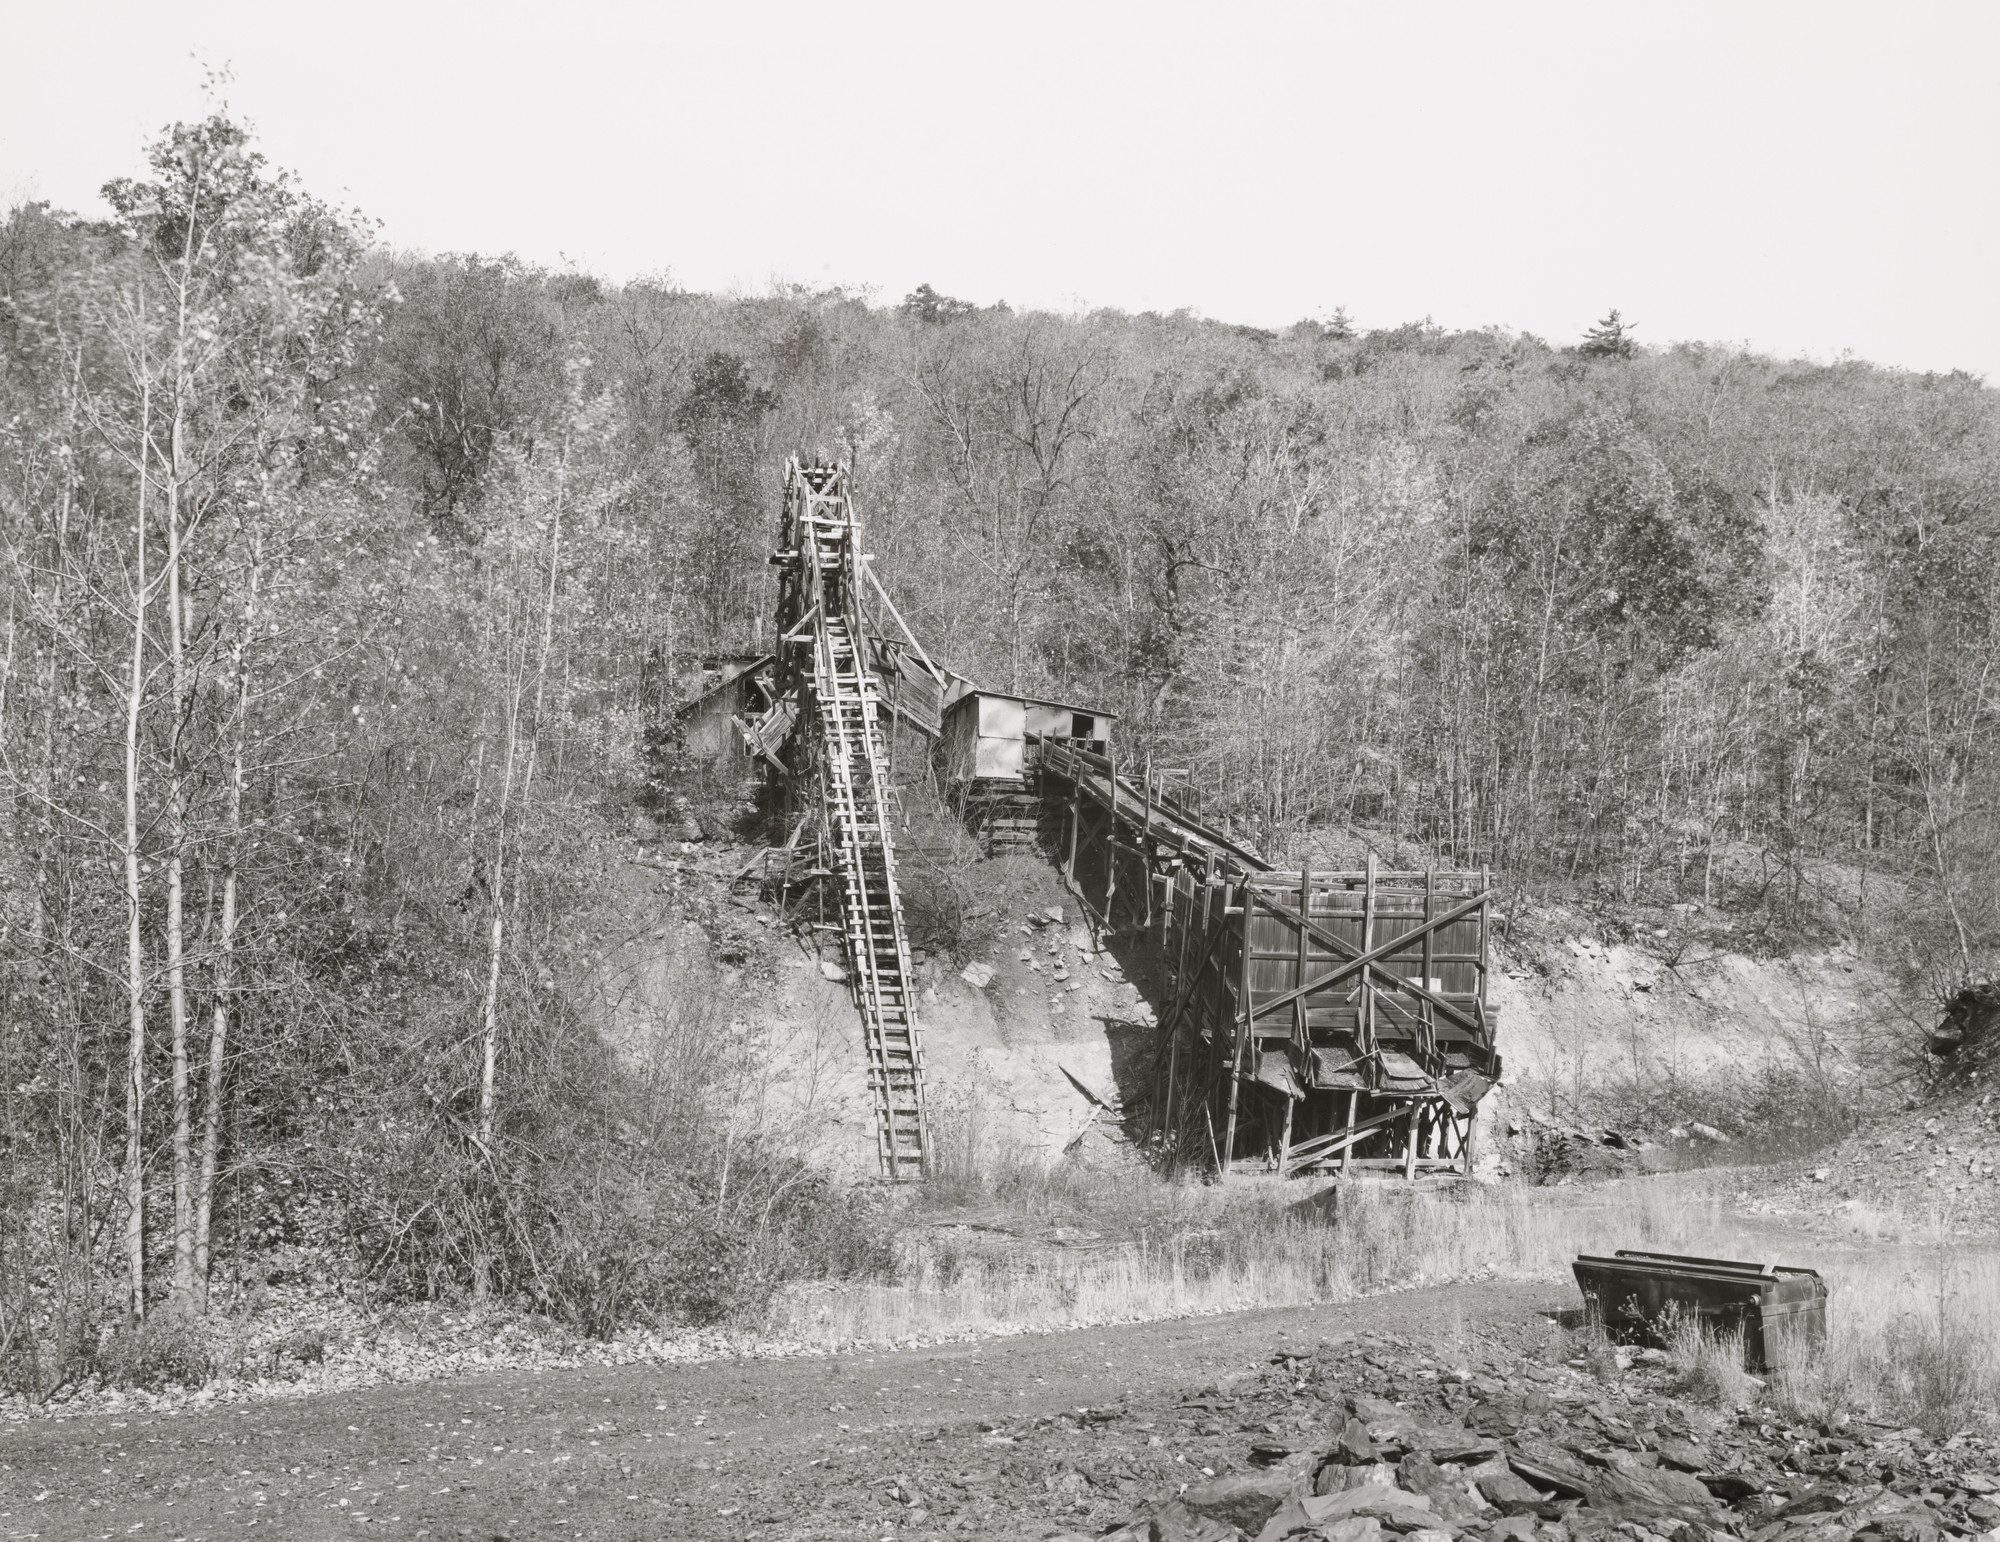 Bernd Becher, Hilla Becher. Coal Mine, Bear Valley, Schuylkill County, Pennsylvania, United States. 1974